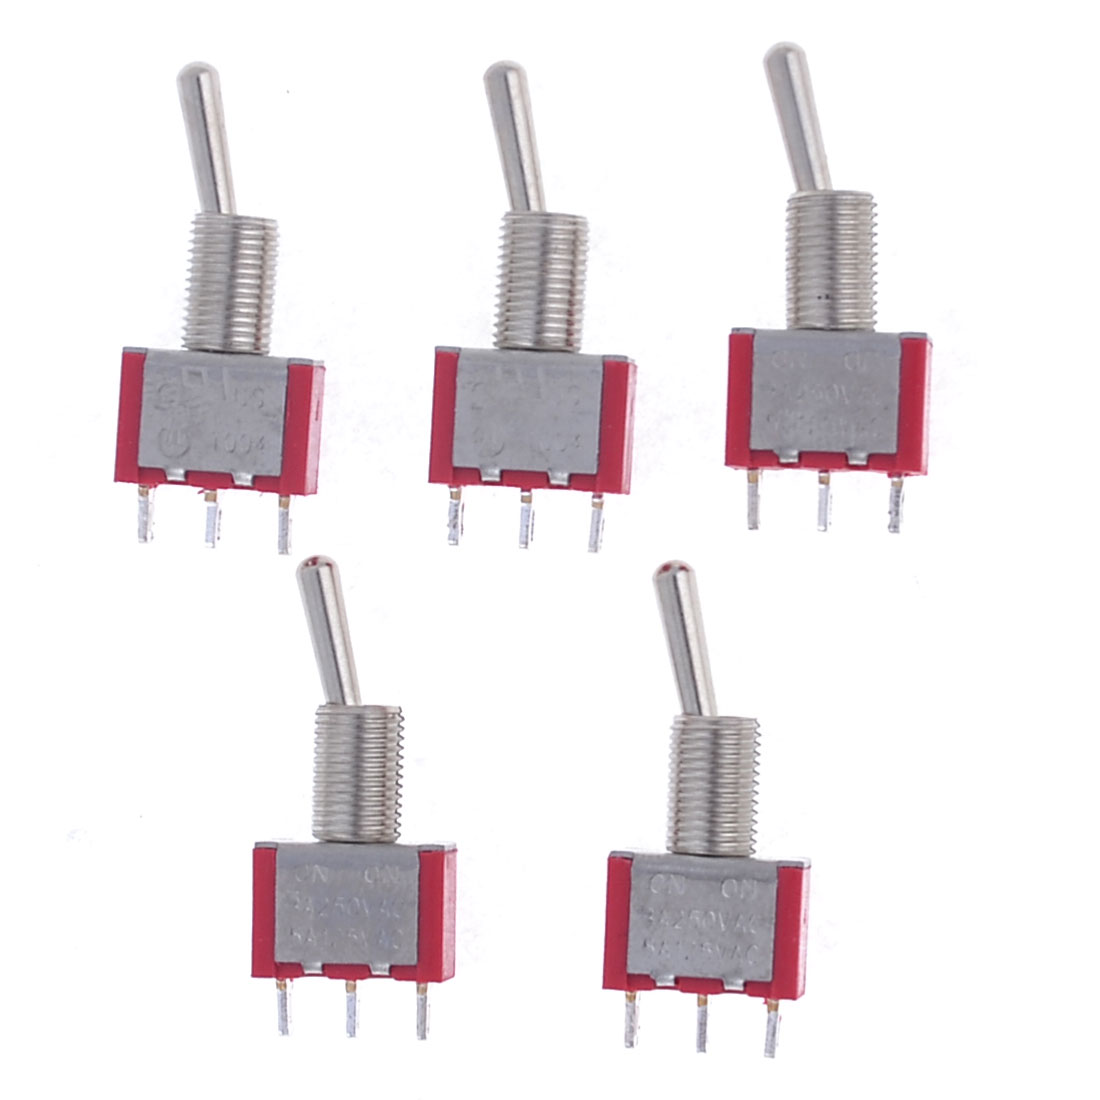 Red 5A 125VAC/ 3A 250VAC SPDT 3 Pin On/On 2 Position Toggle Switch